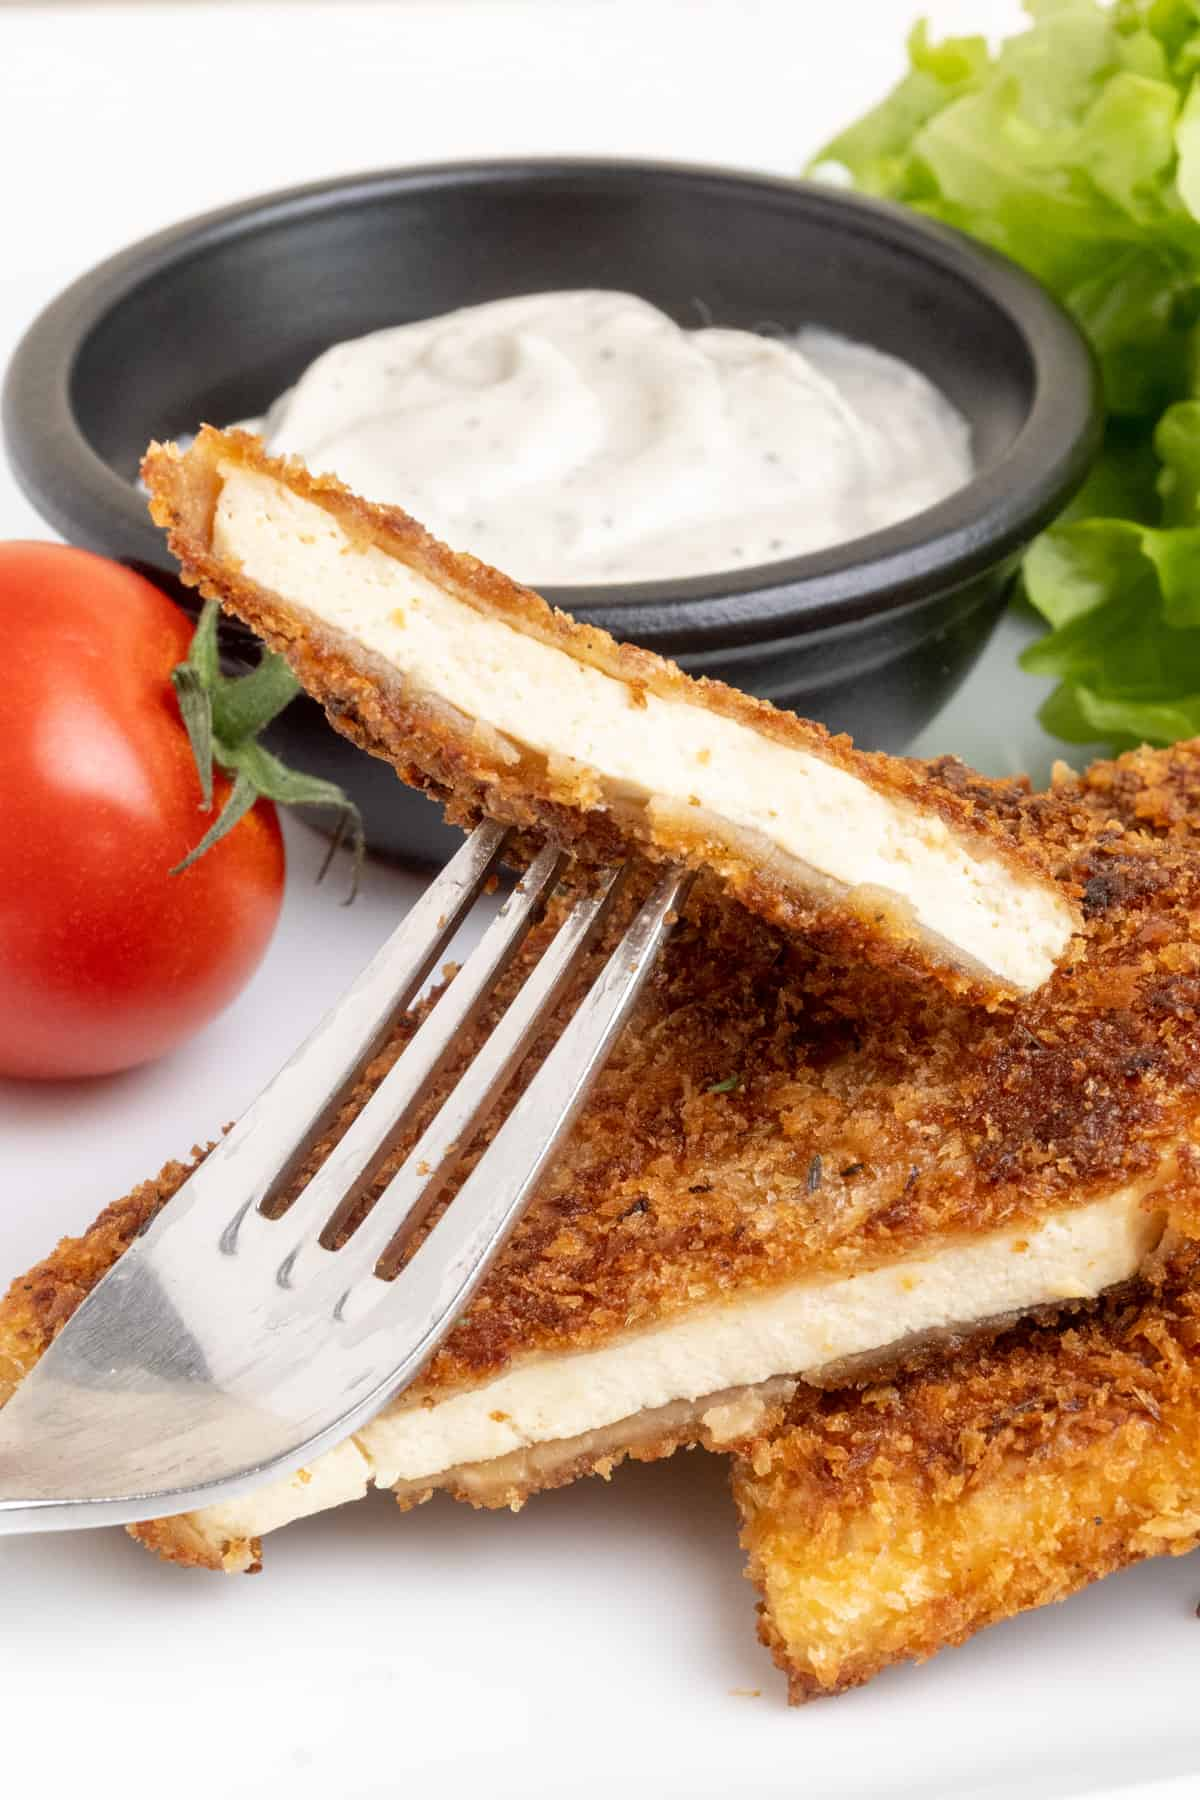 A corner piece of breaded tofu cut from a slice picked up on a fork.